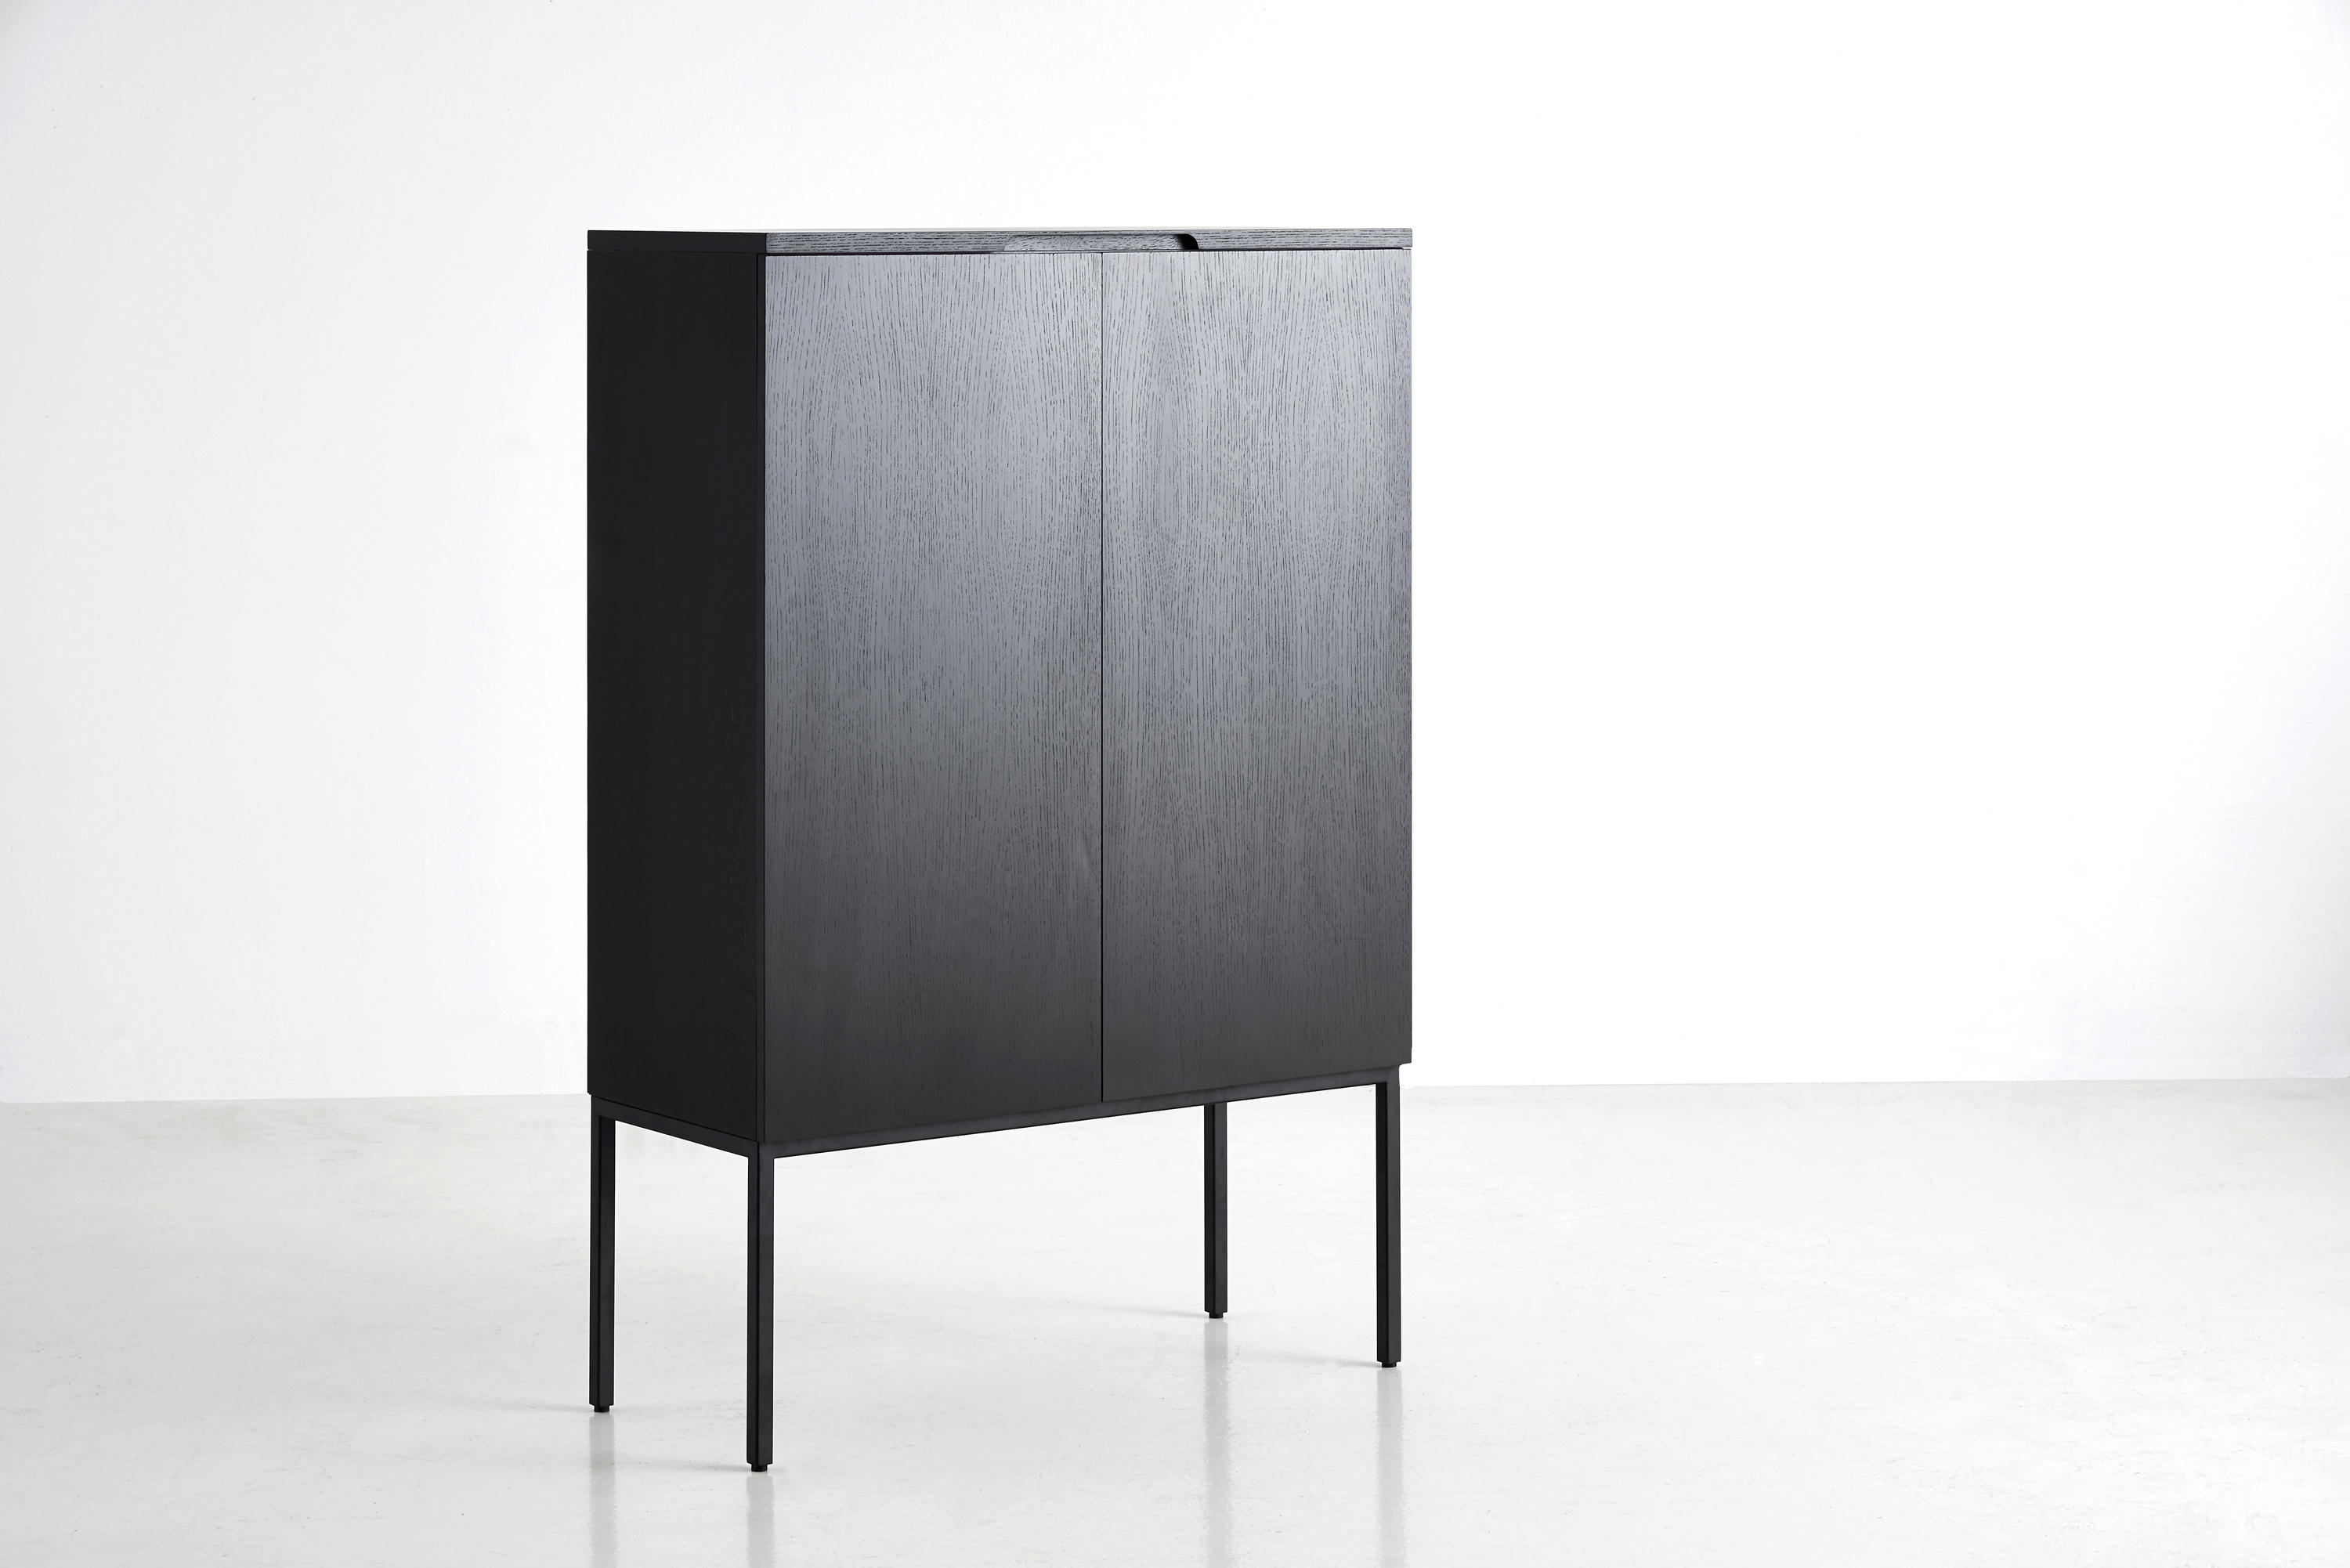 Exceptionnel Barn Cabinet By WOUD | Cabinets Barn Cabinet By WOUD | Cabinets